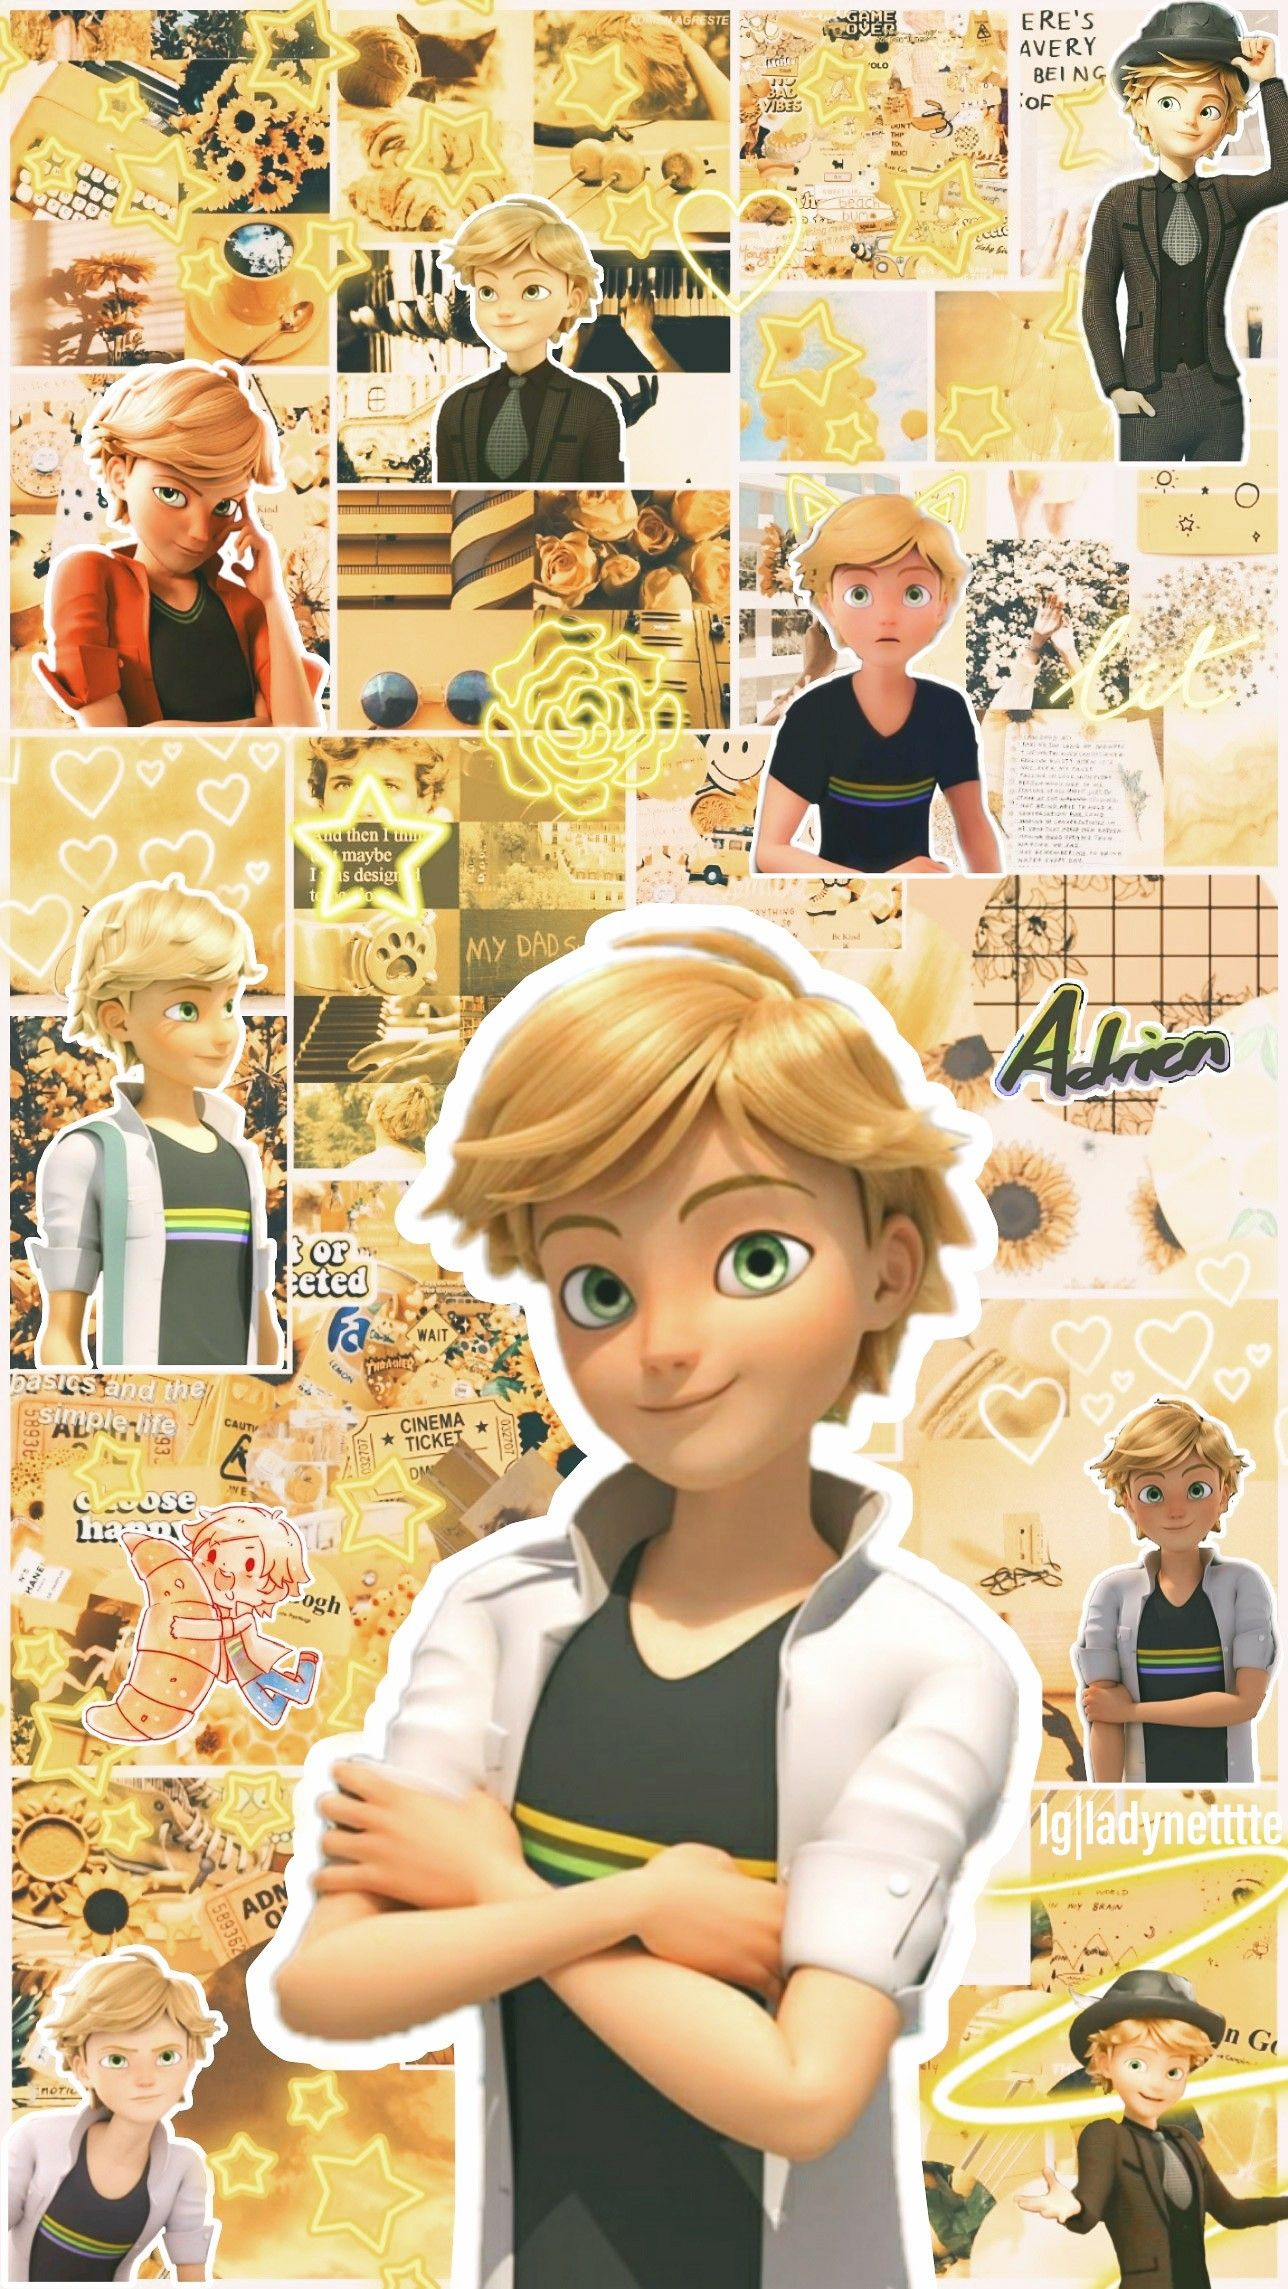 Photo of 💛Adrien Wallpaper💛 Follow me on Insta (ladynetttte) for more miraculous wallpapers!